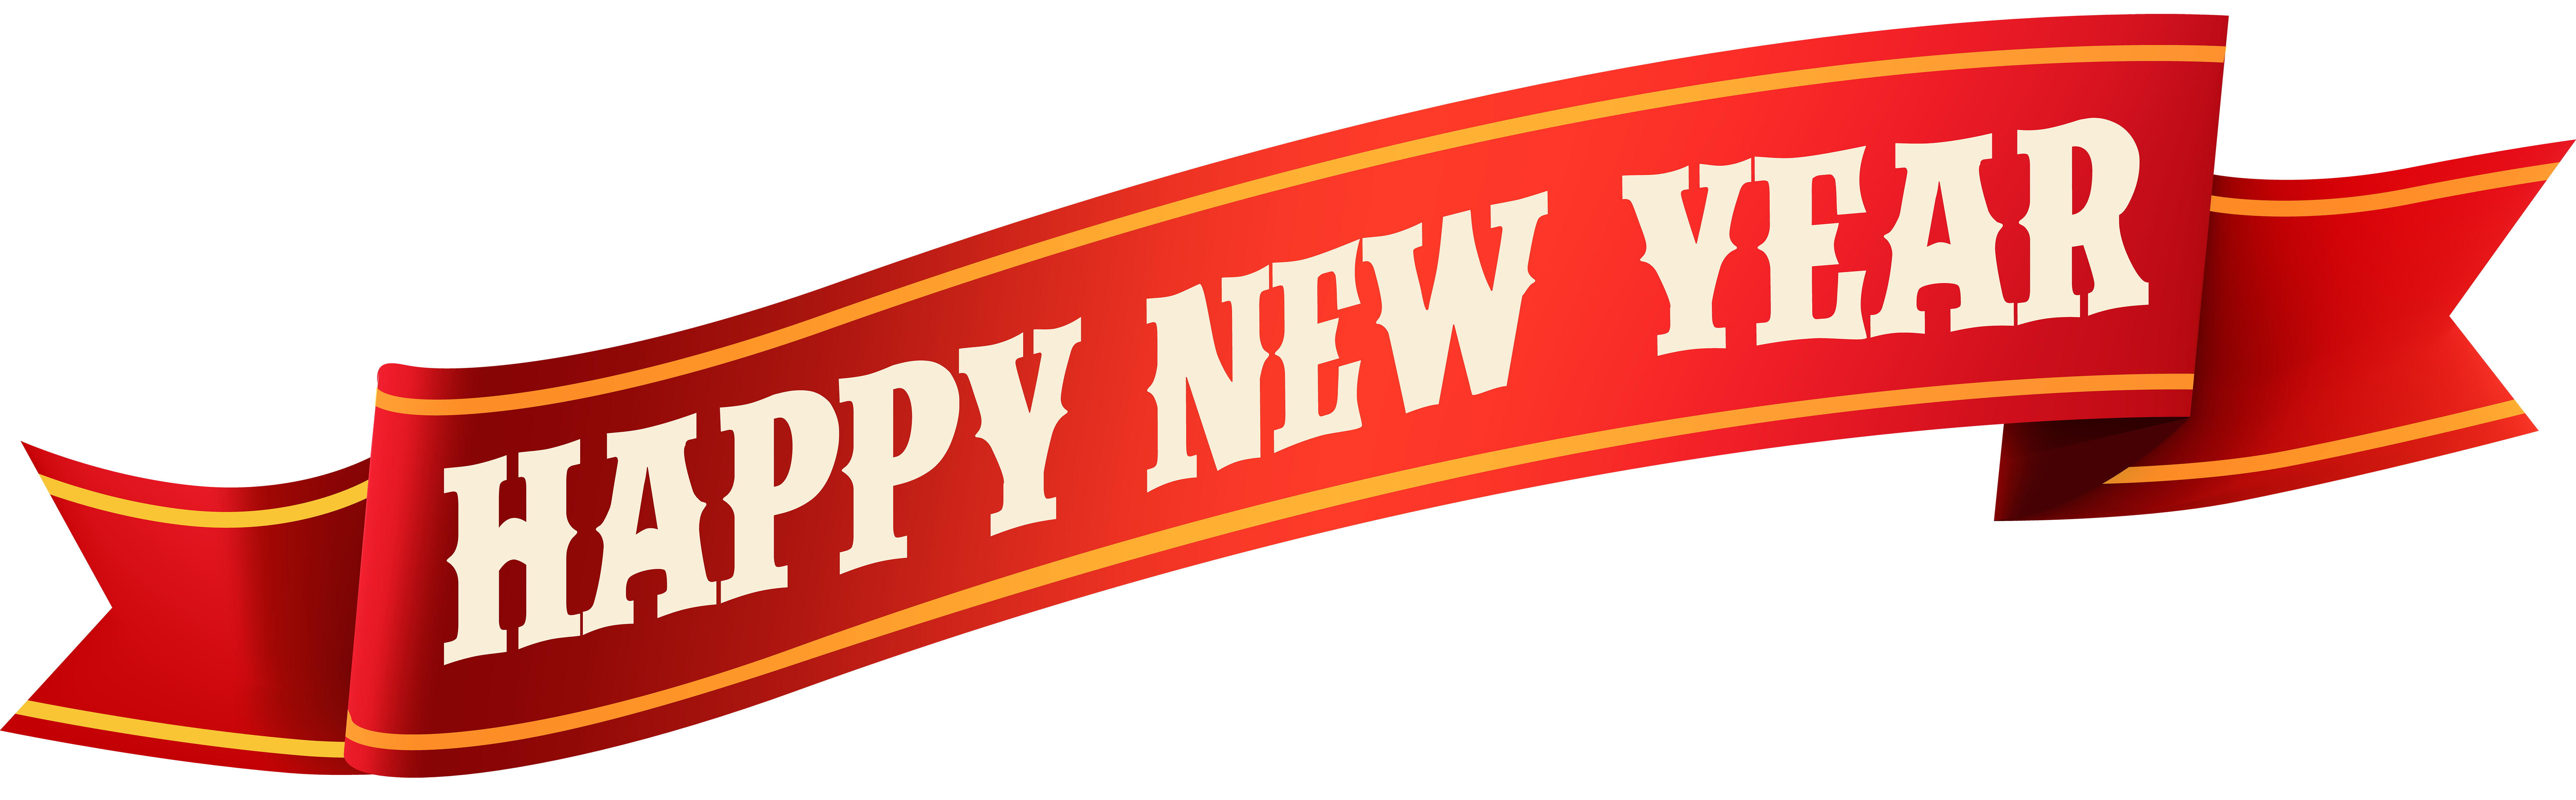 New year banner png. Happy clip art gallery